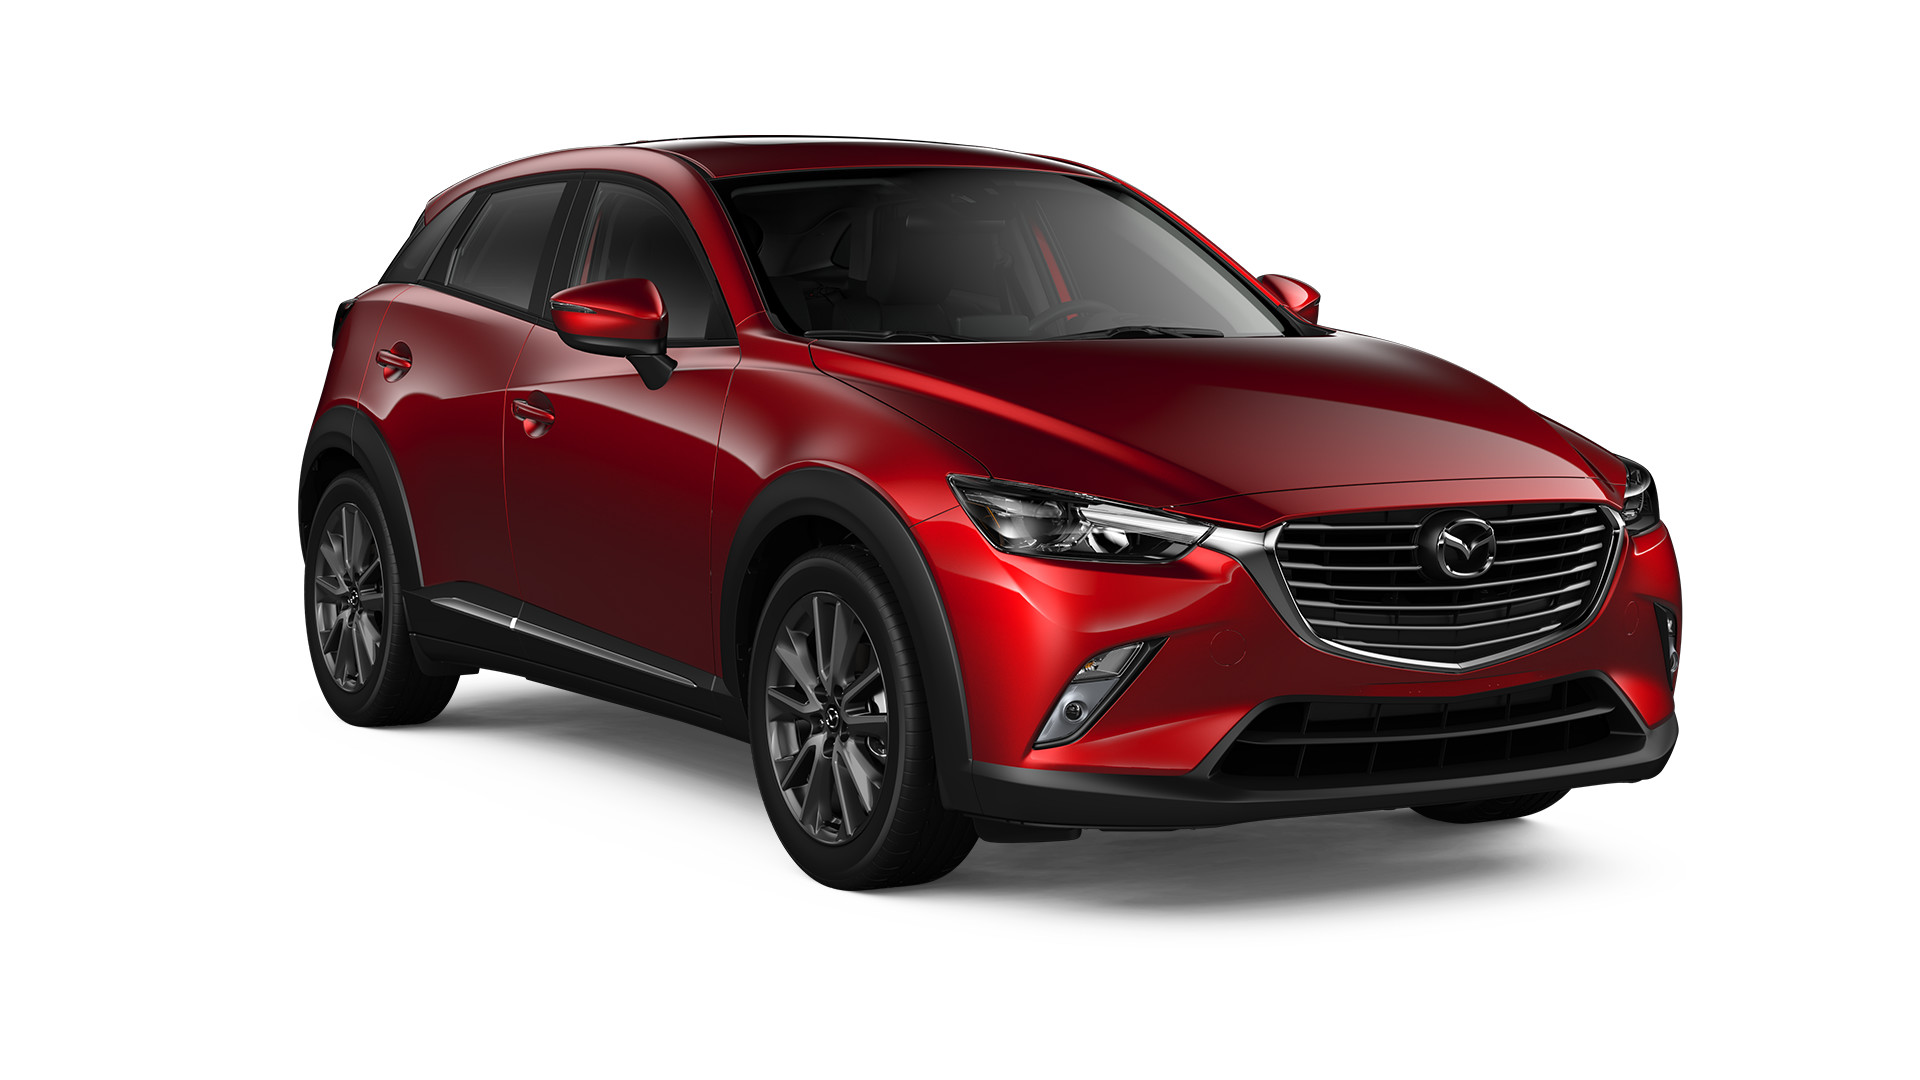 2019 Mazda CX-3 for sale in Edmonton, AB